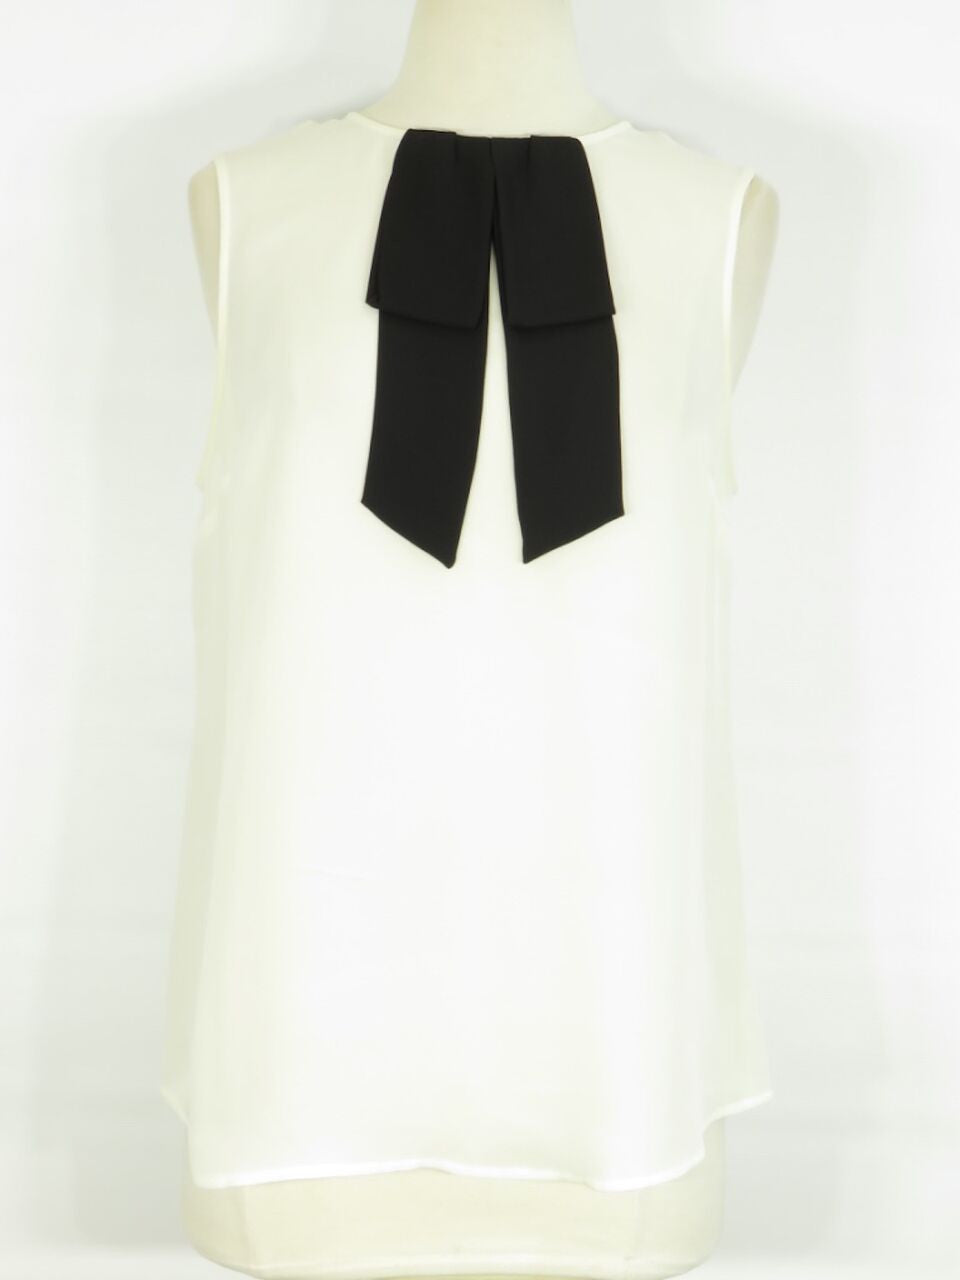 a563632daf1c03 THEORY Women White Sleeveless Black Bow Tie Button Down Top Shirt M. Theory  Lorena s WORTH